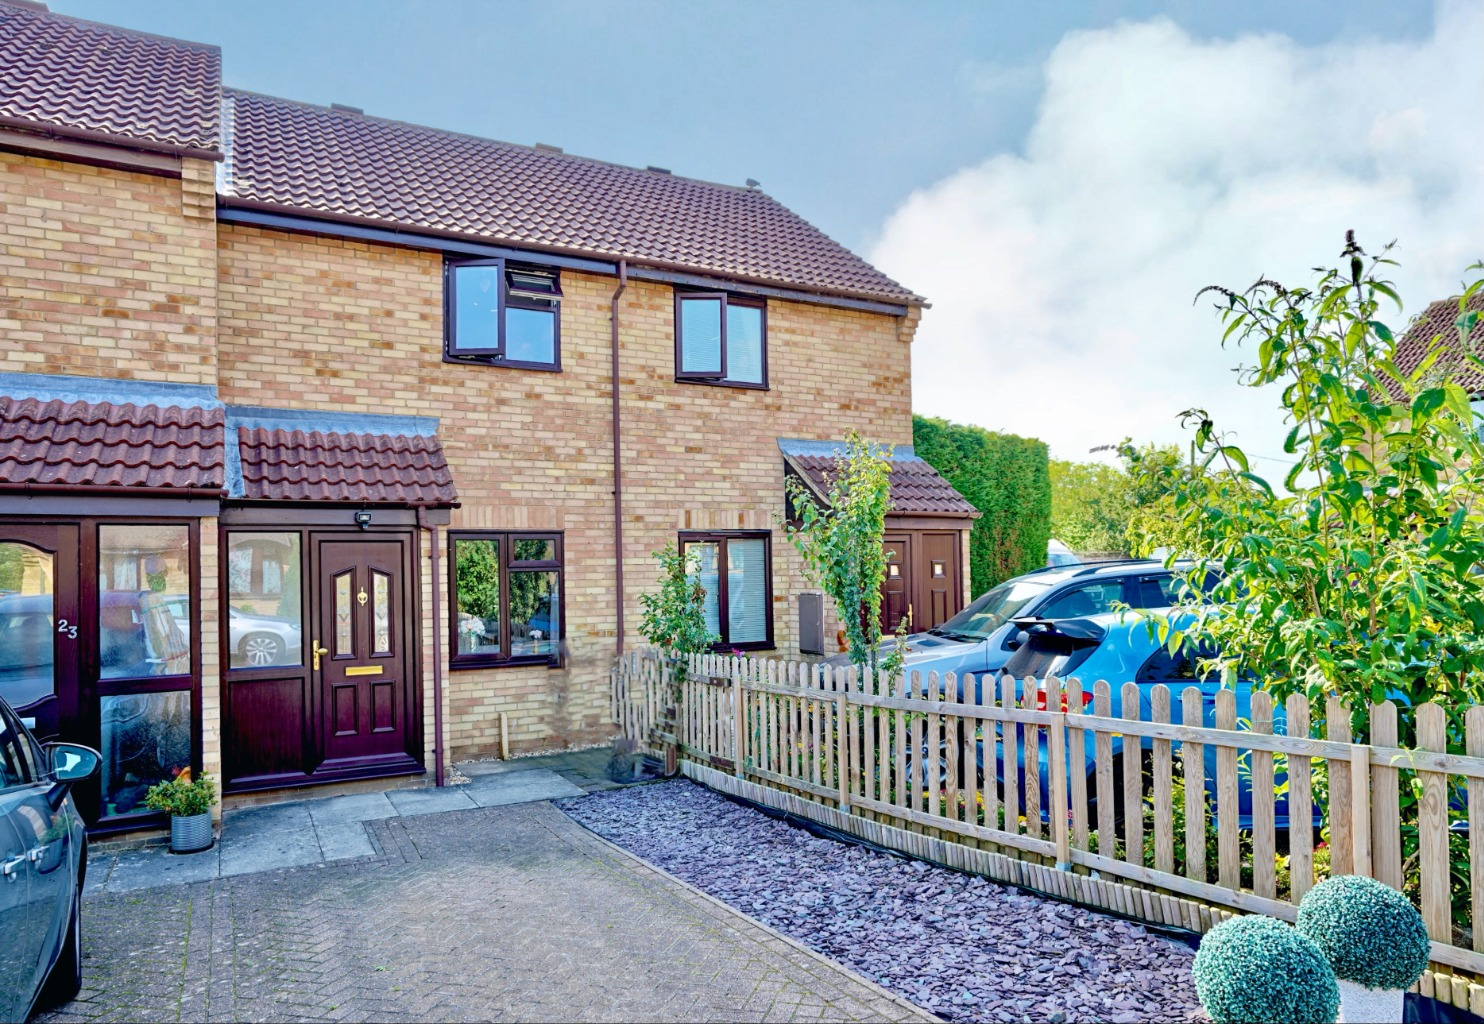 2 bed terraced house for sale in Swallowfield, Bedford  - Property Image 1